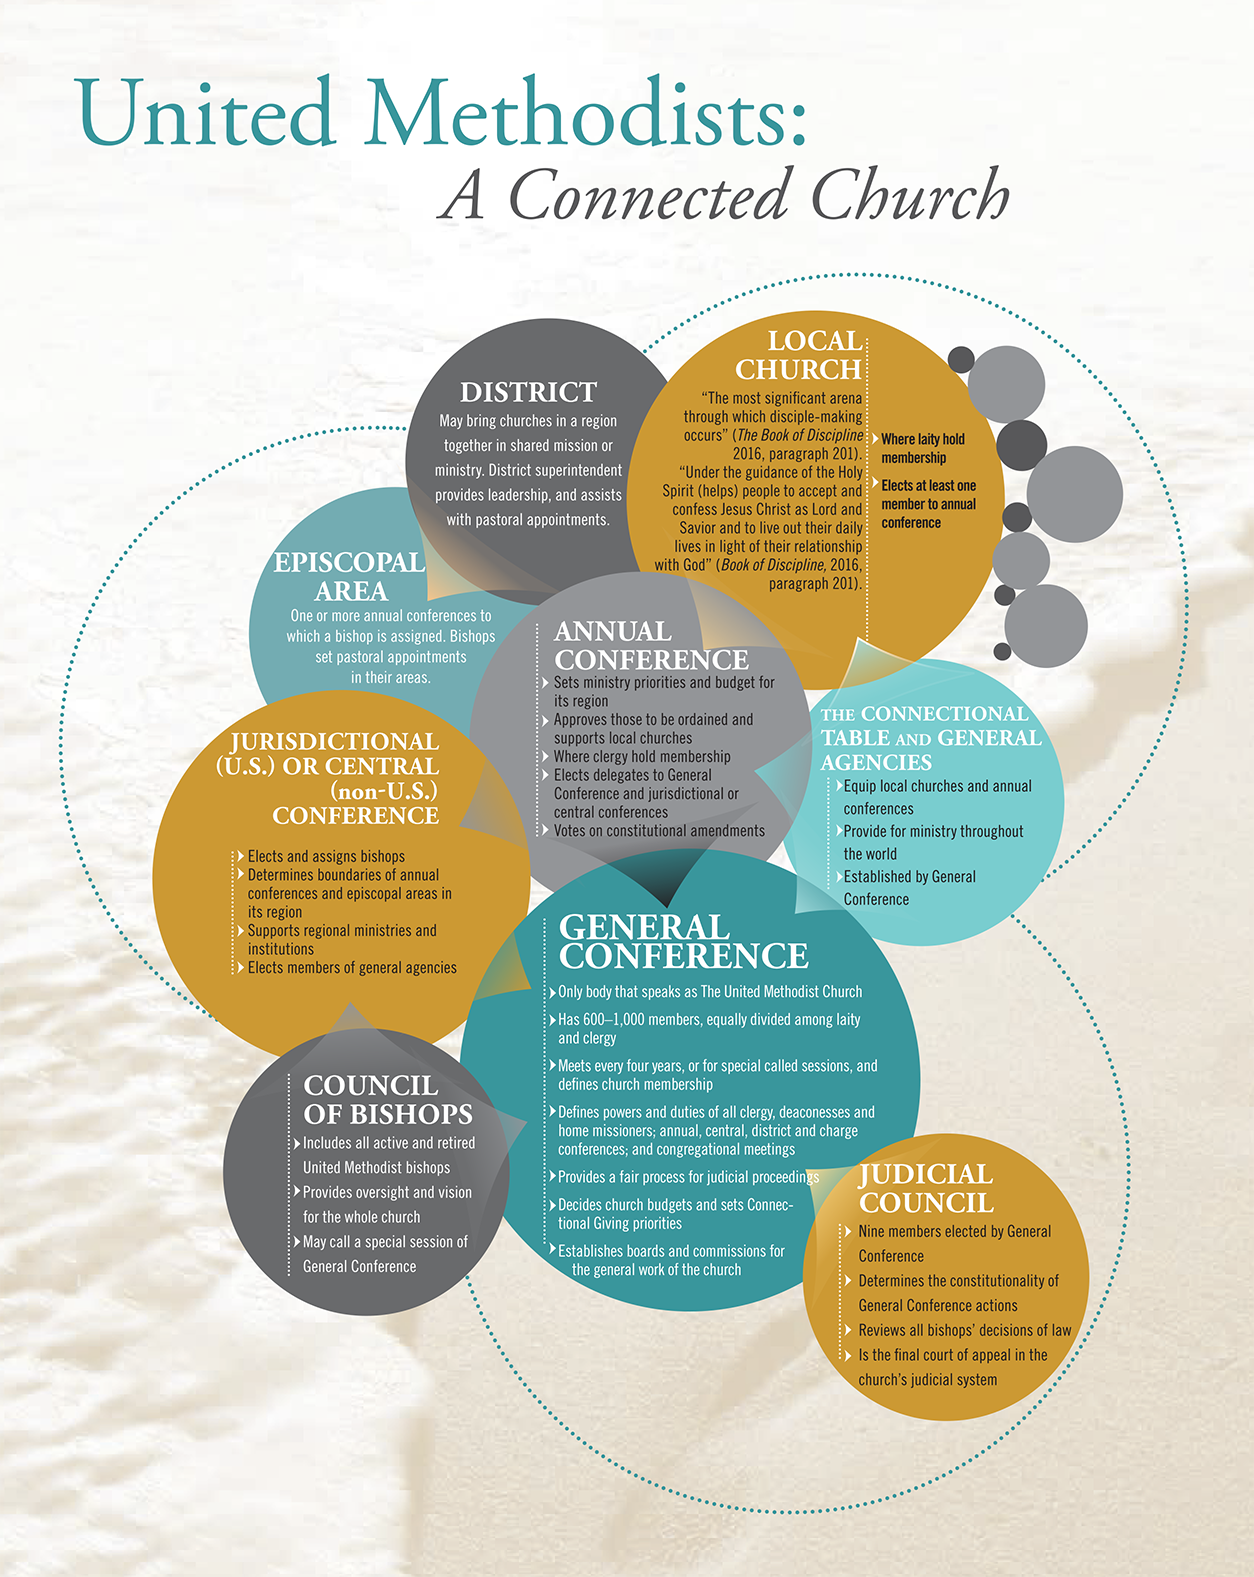 The connectional structure of The United Methodist Church. Infographic from The United Methodist Handbook, courtesy of United Methodist Communications.